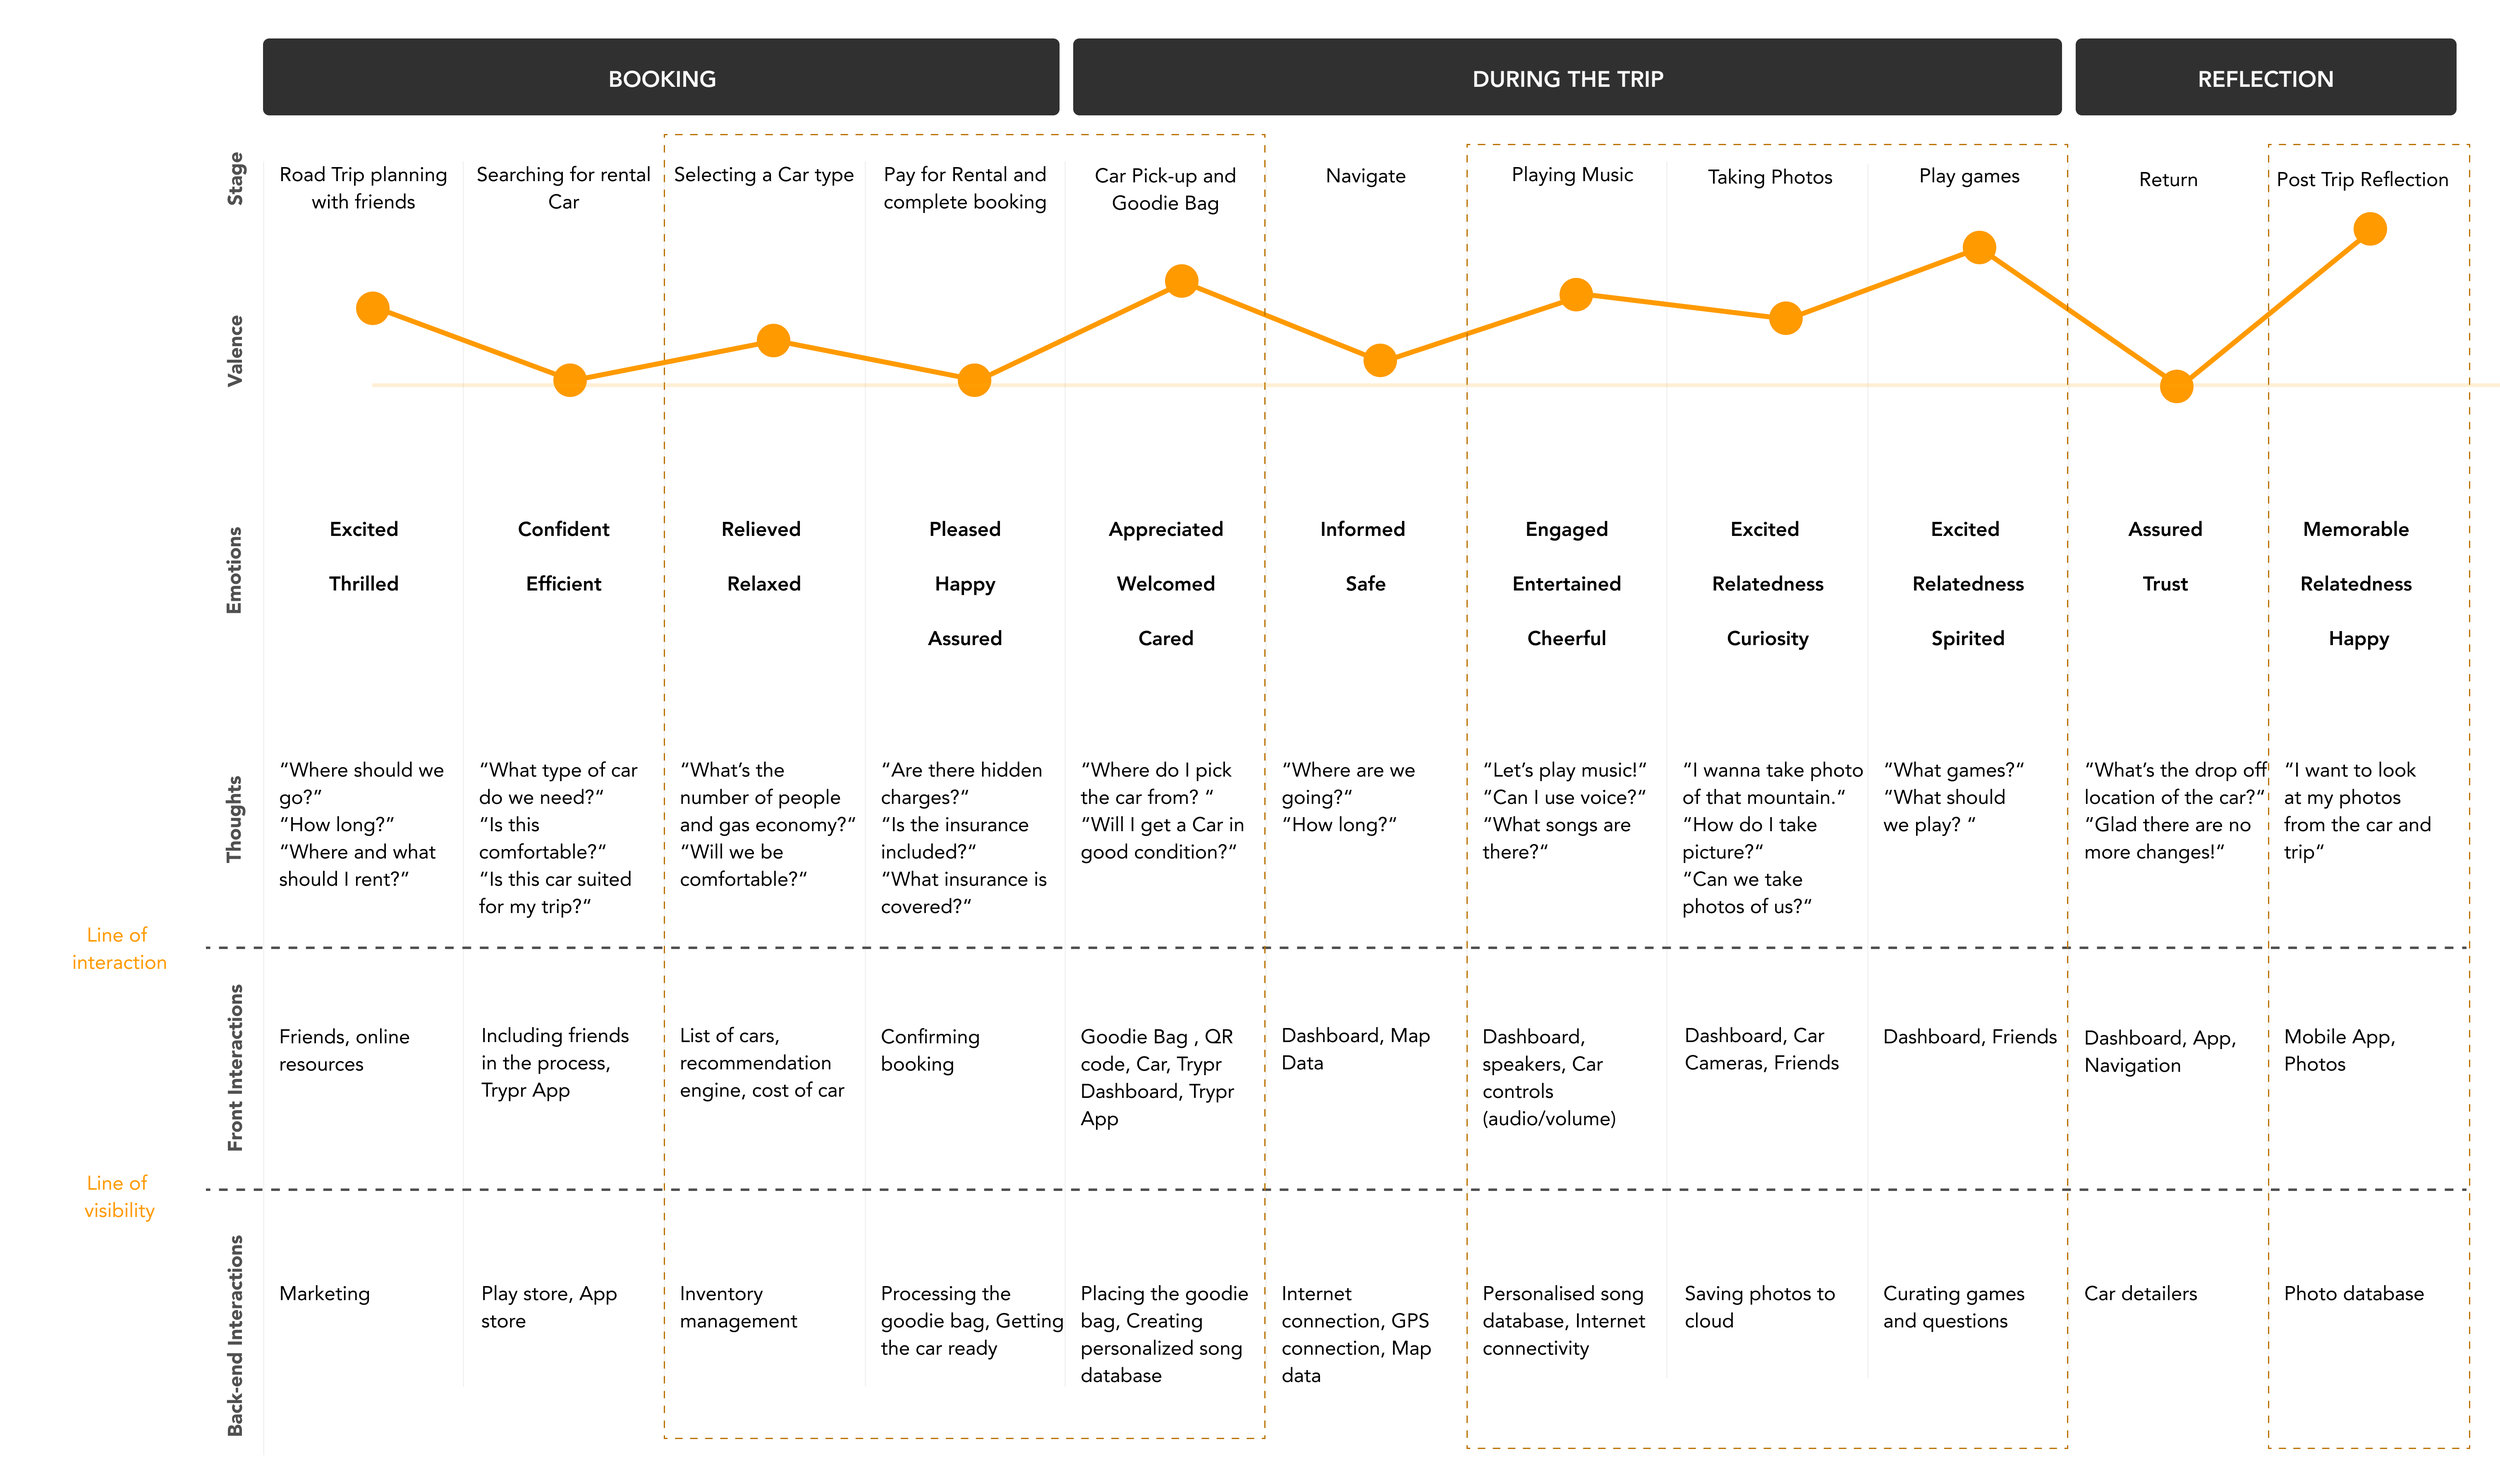 Customer journey map for the 'envisioned' journey of using Trypr